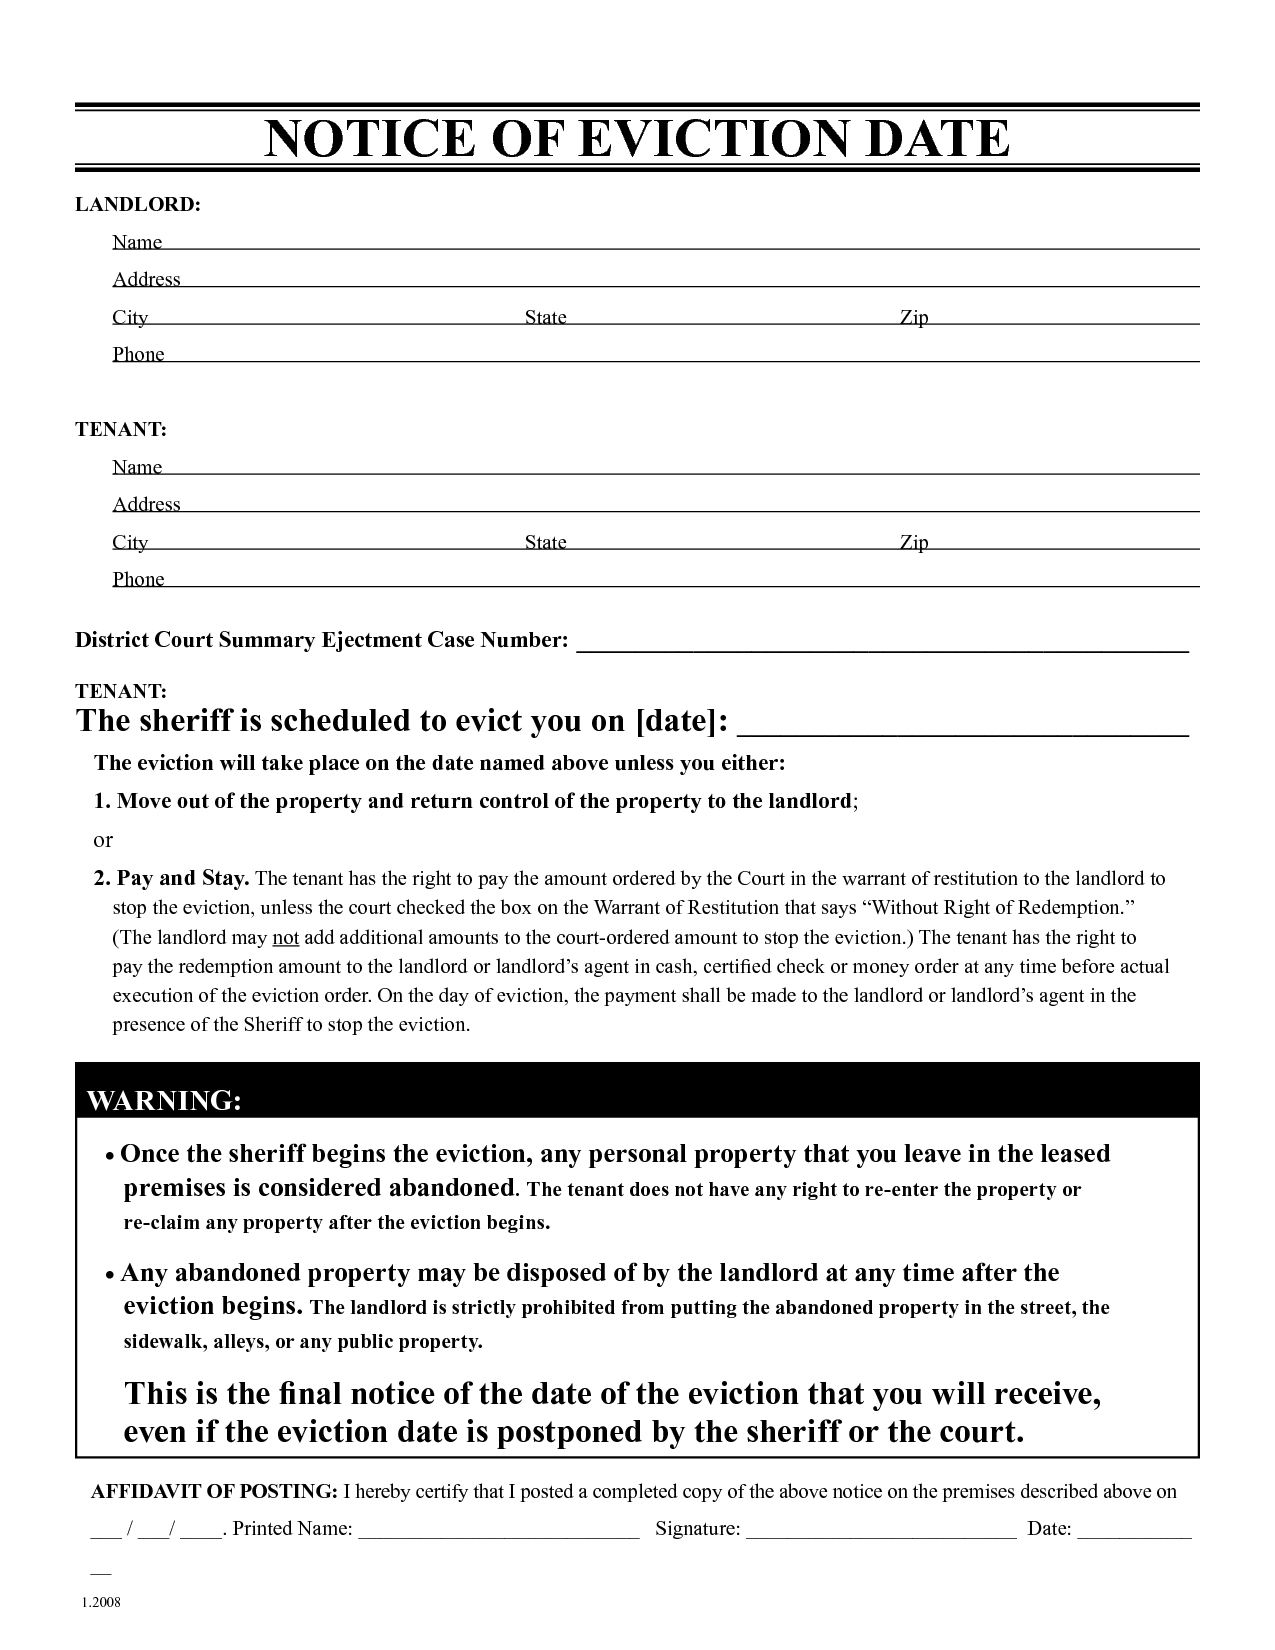 Free Eviction Notice Template | Printable Eviction Notice | Leaave - Free Printable Eviction Notice Pa